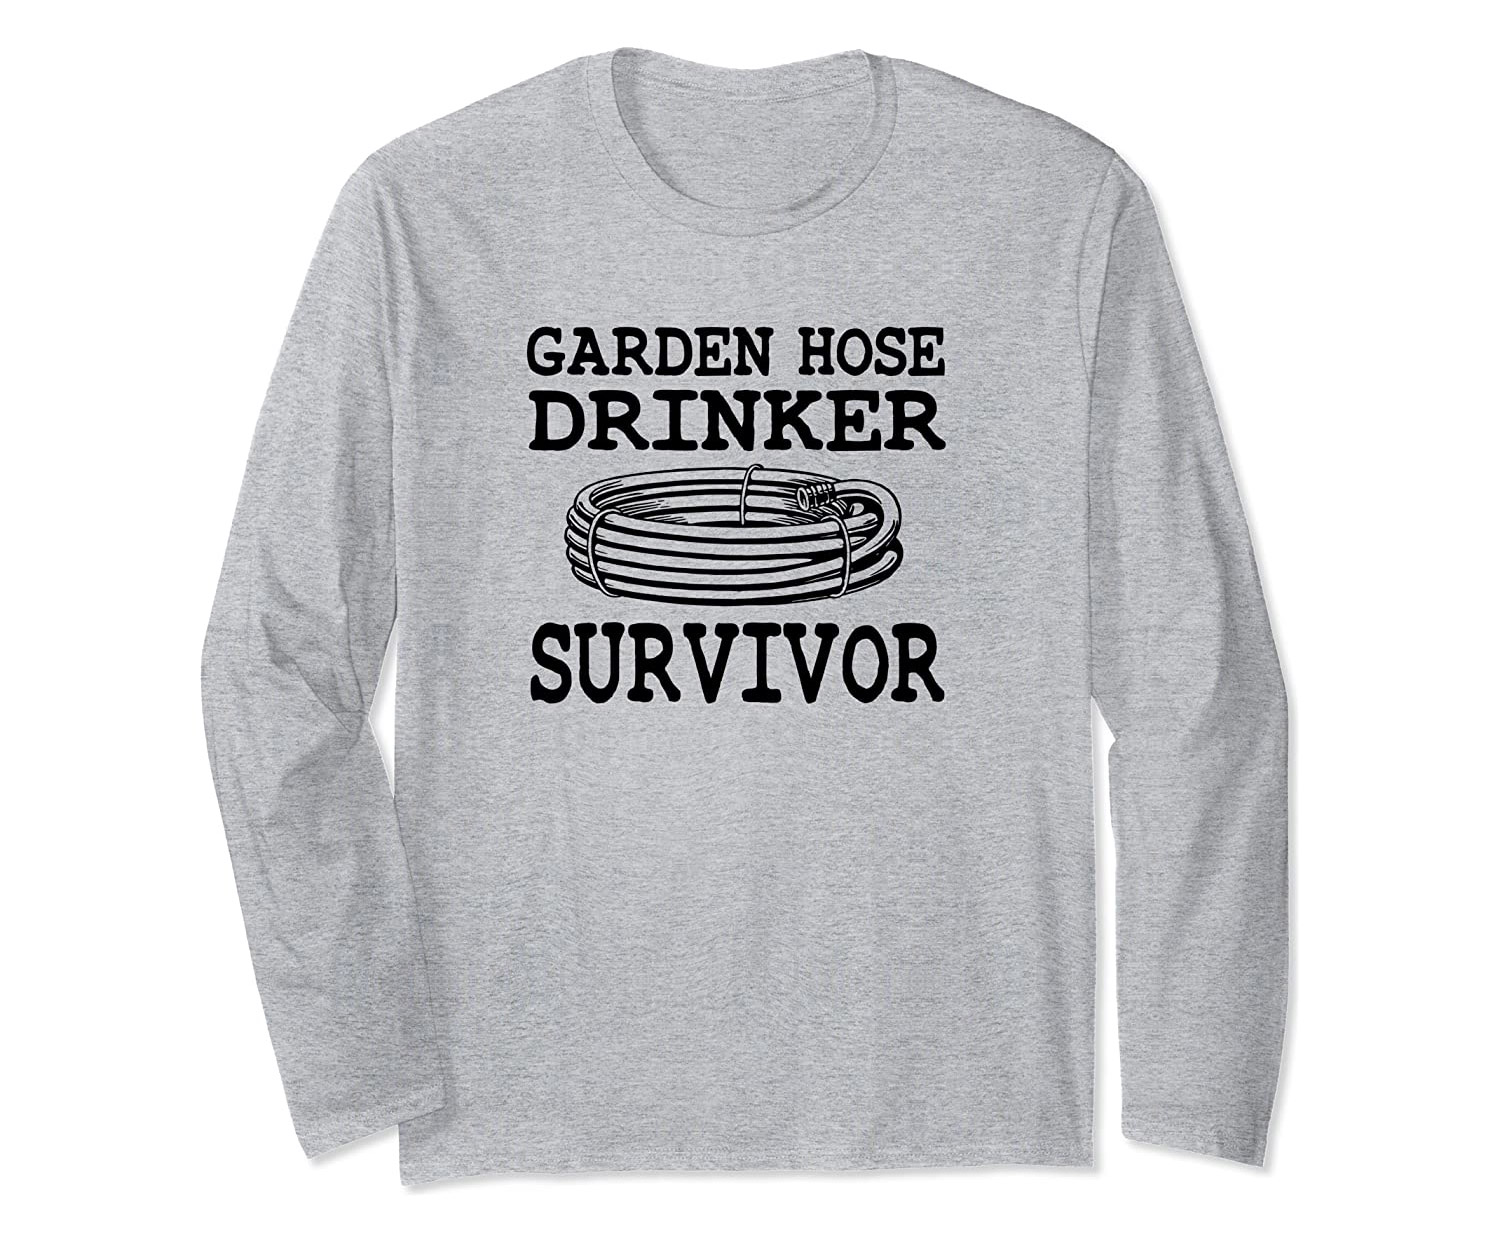 Garden Hose Drinker Survivor Shirt